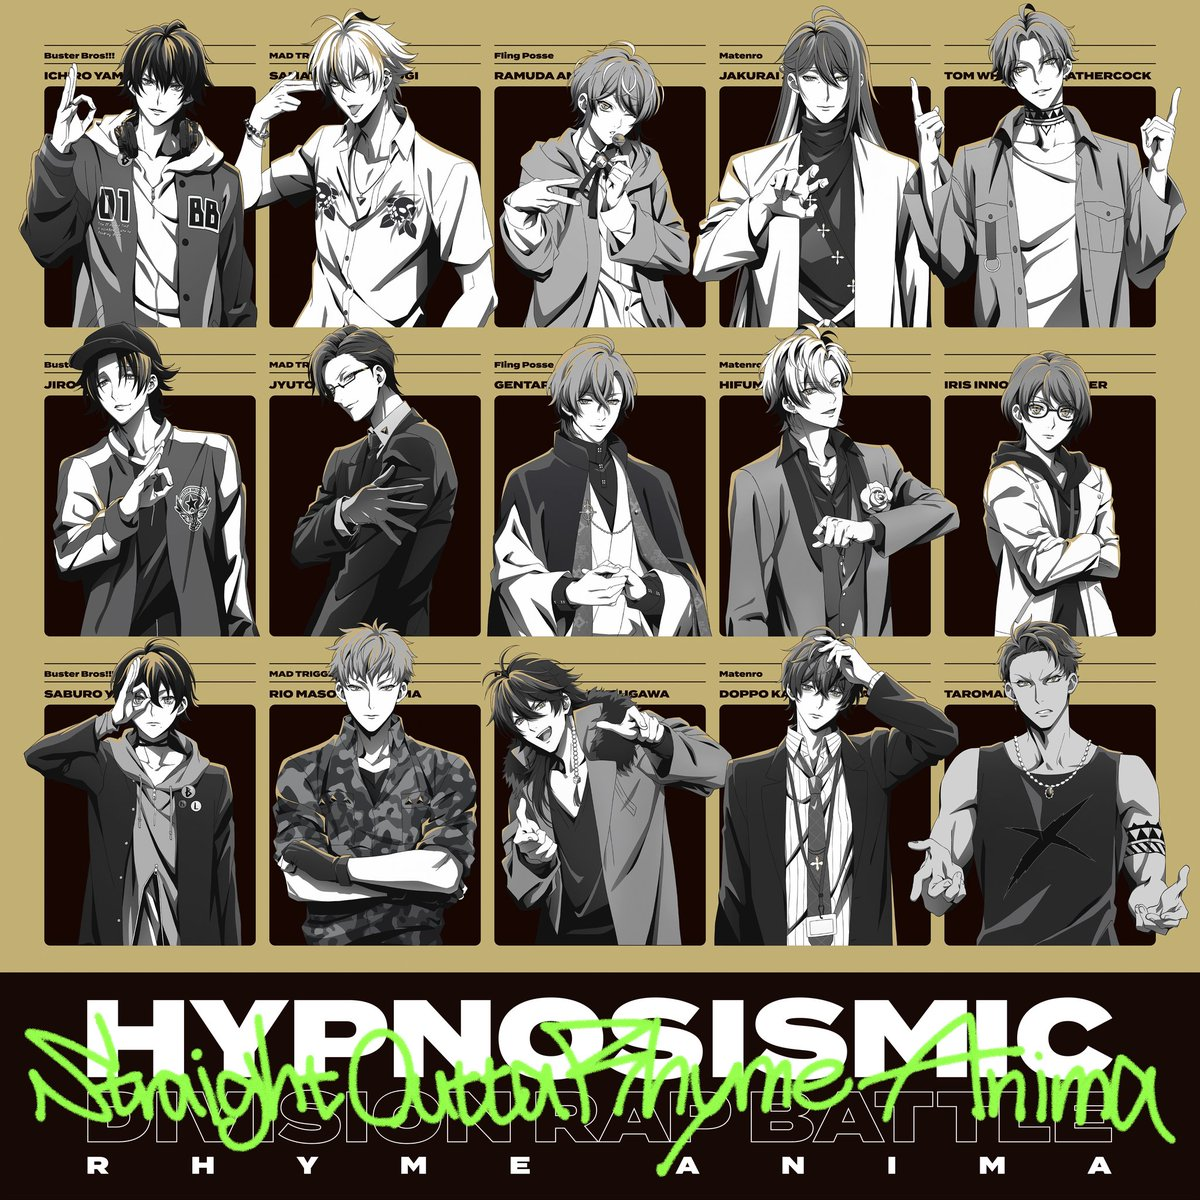 『Secret Aliens - Love Dimension』収録の『Straight Outta Rhyme Anima』ジャケット